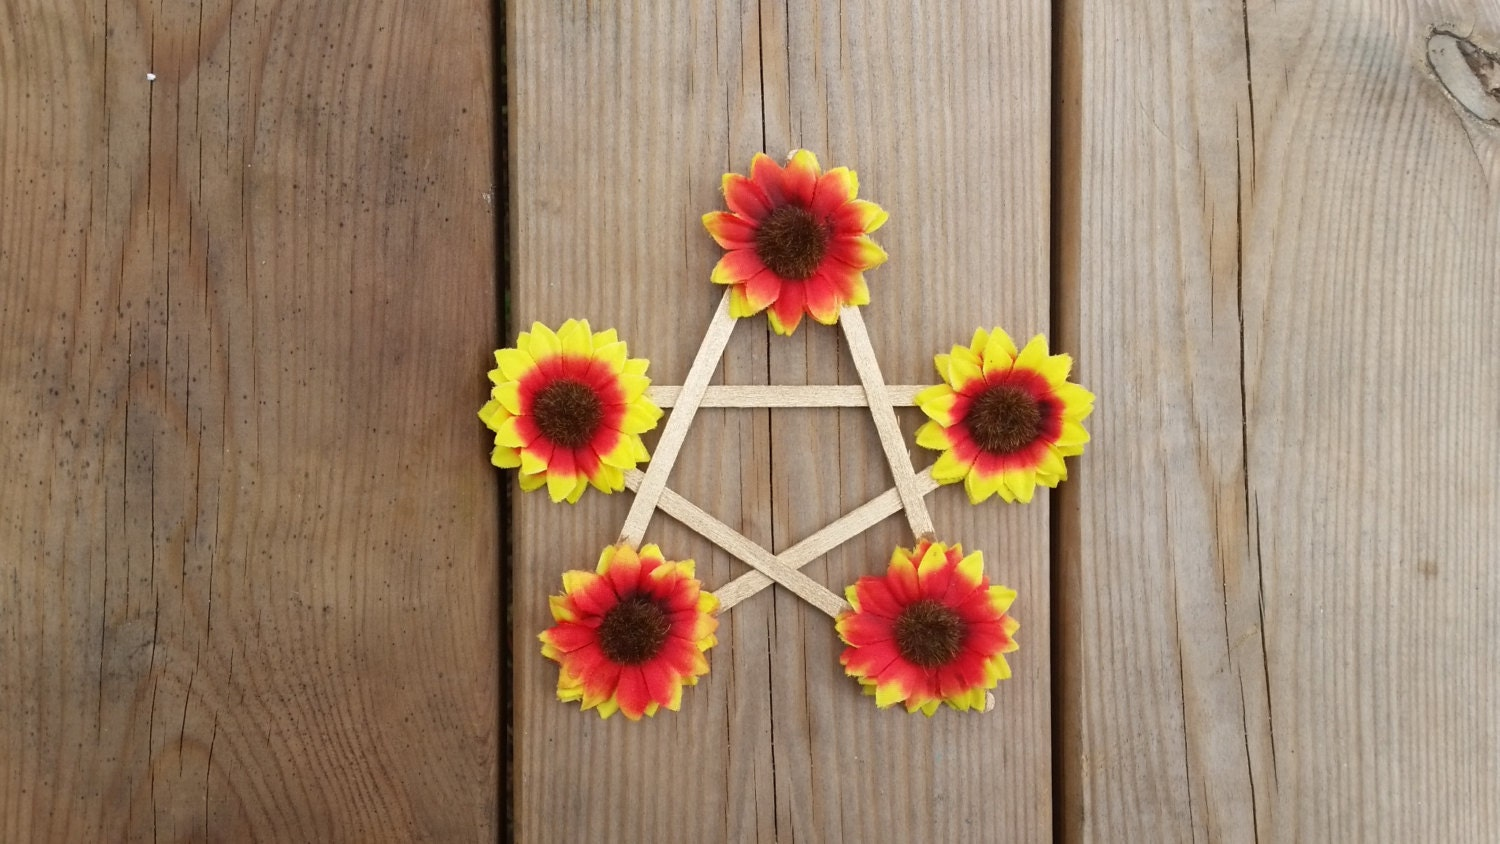 Midsummer Pentagram Litha Altar Decor Sunflower Pentagram Litha Sabbat Decor Seasonal Decor Witches Star Pagan Home Decor Pagan Gift